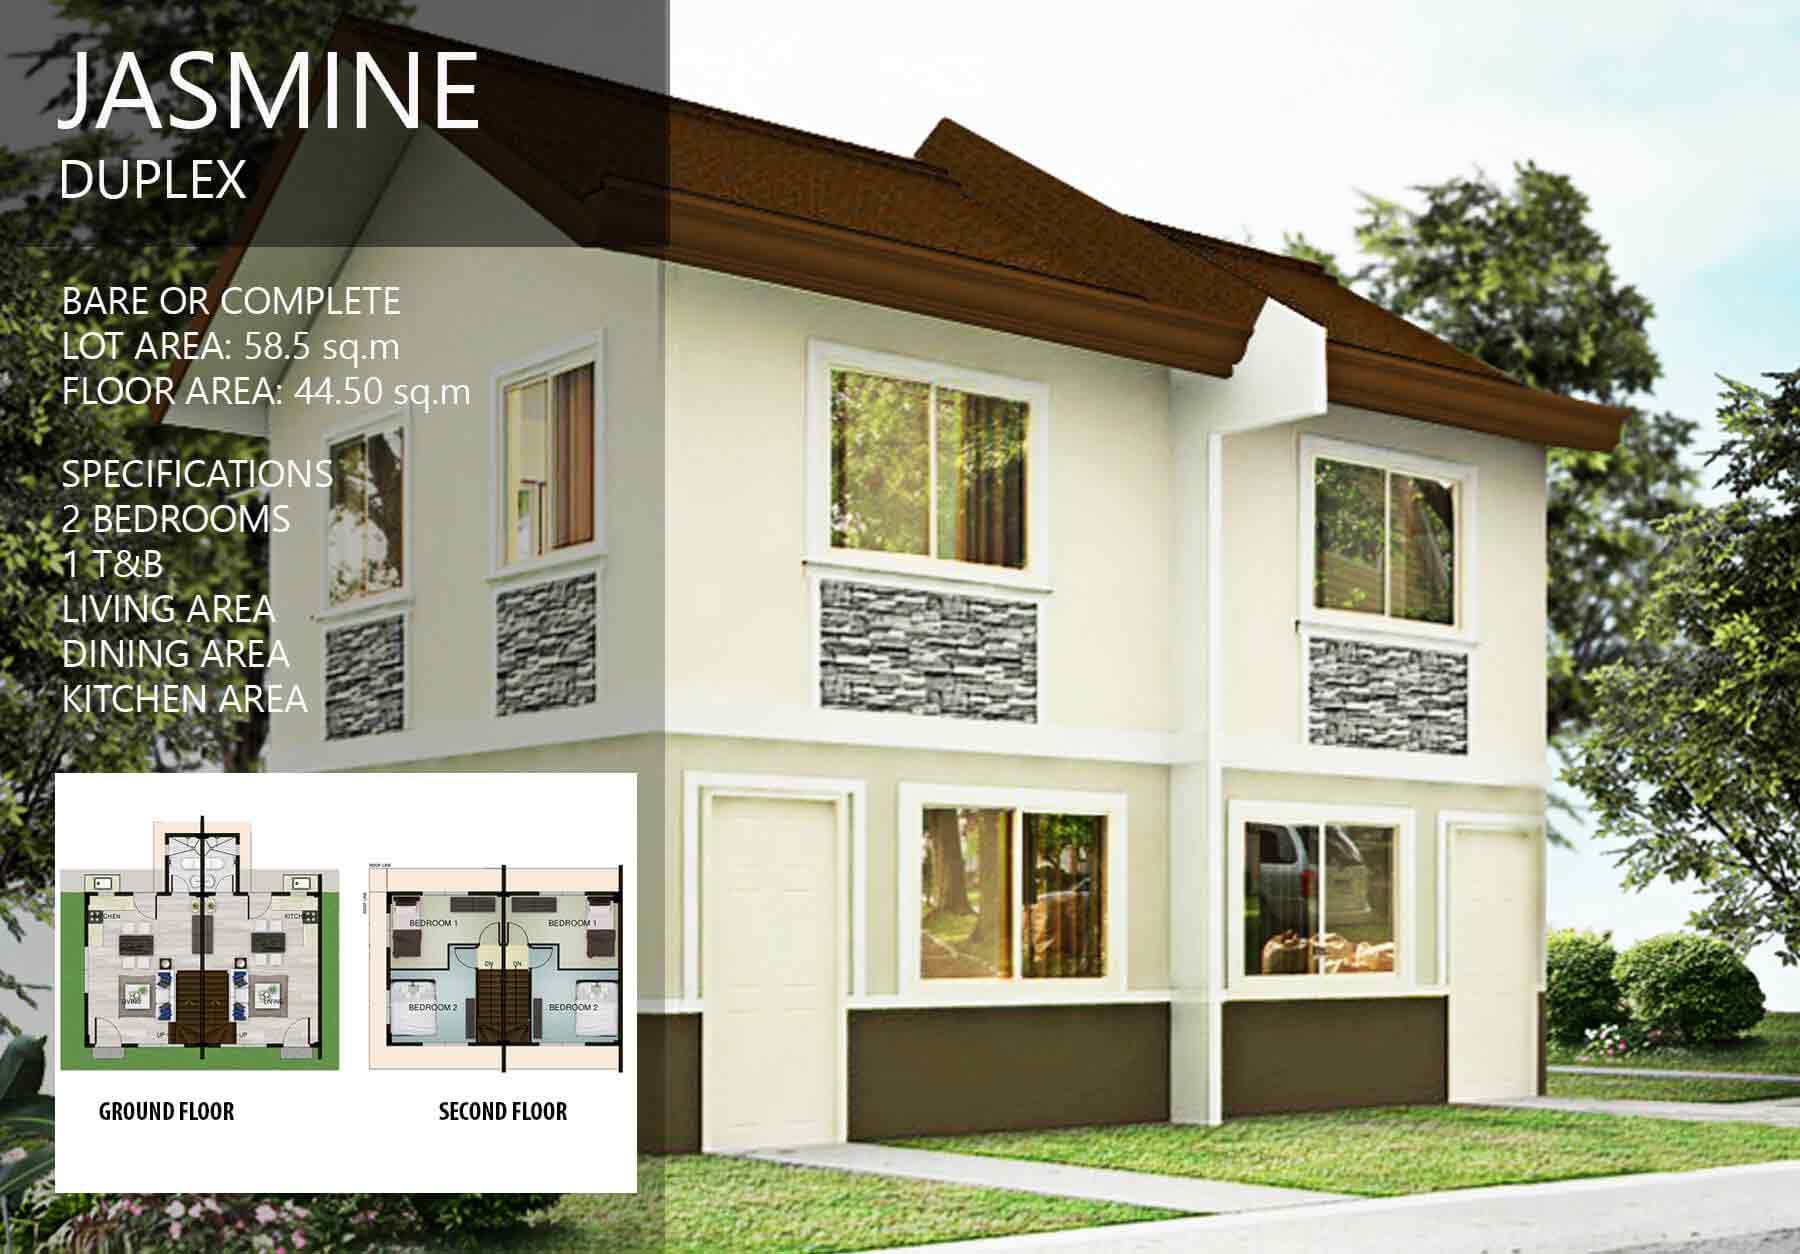 Camella Homes Floor Plan Philippines Jasmine Duplex Arella Residences House Amp Lot In Laguna